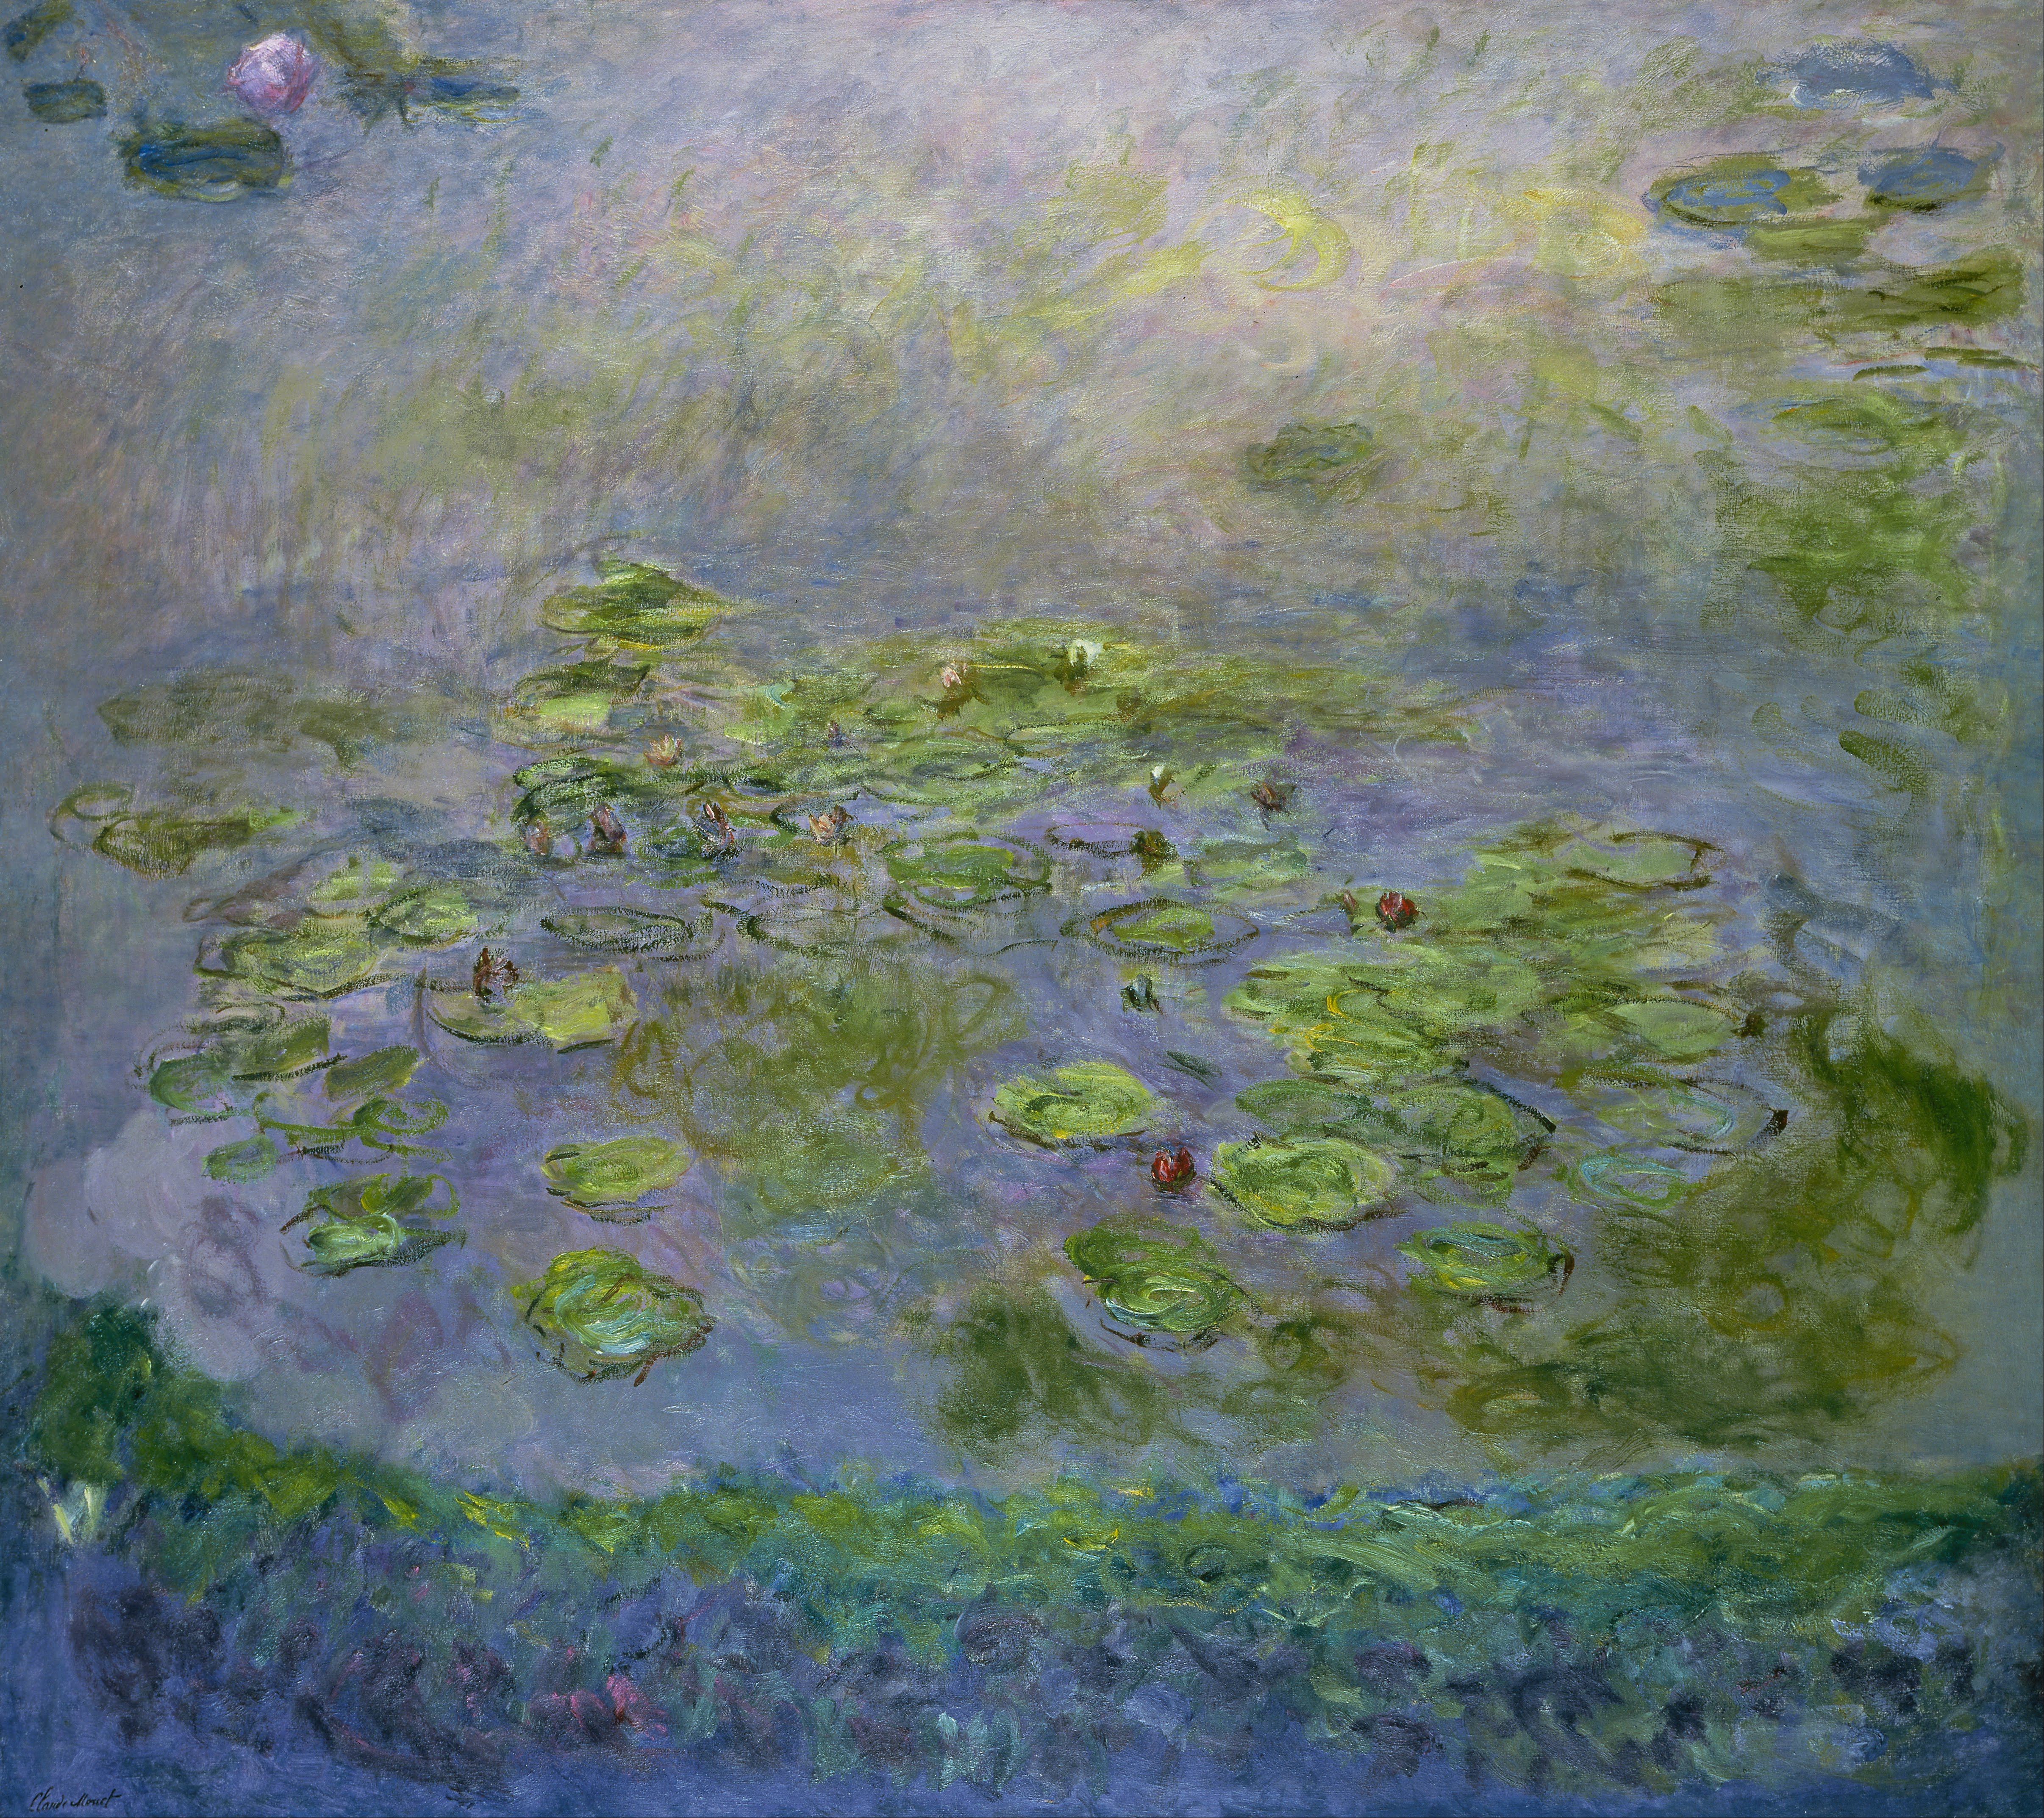 Watercolor artists directory wiki - Https Upload Wikimedia Org Wikipedia Commons F F4 Claude_monet_ _nymph C3 A9as_ 28waterlilies 29_ _google_art_project Jpg